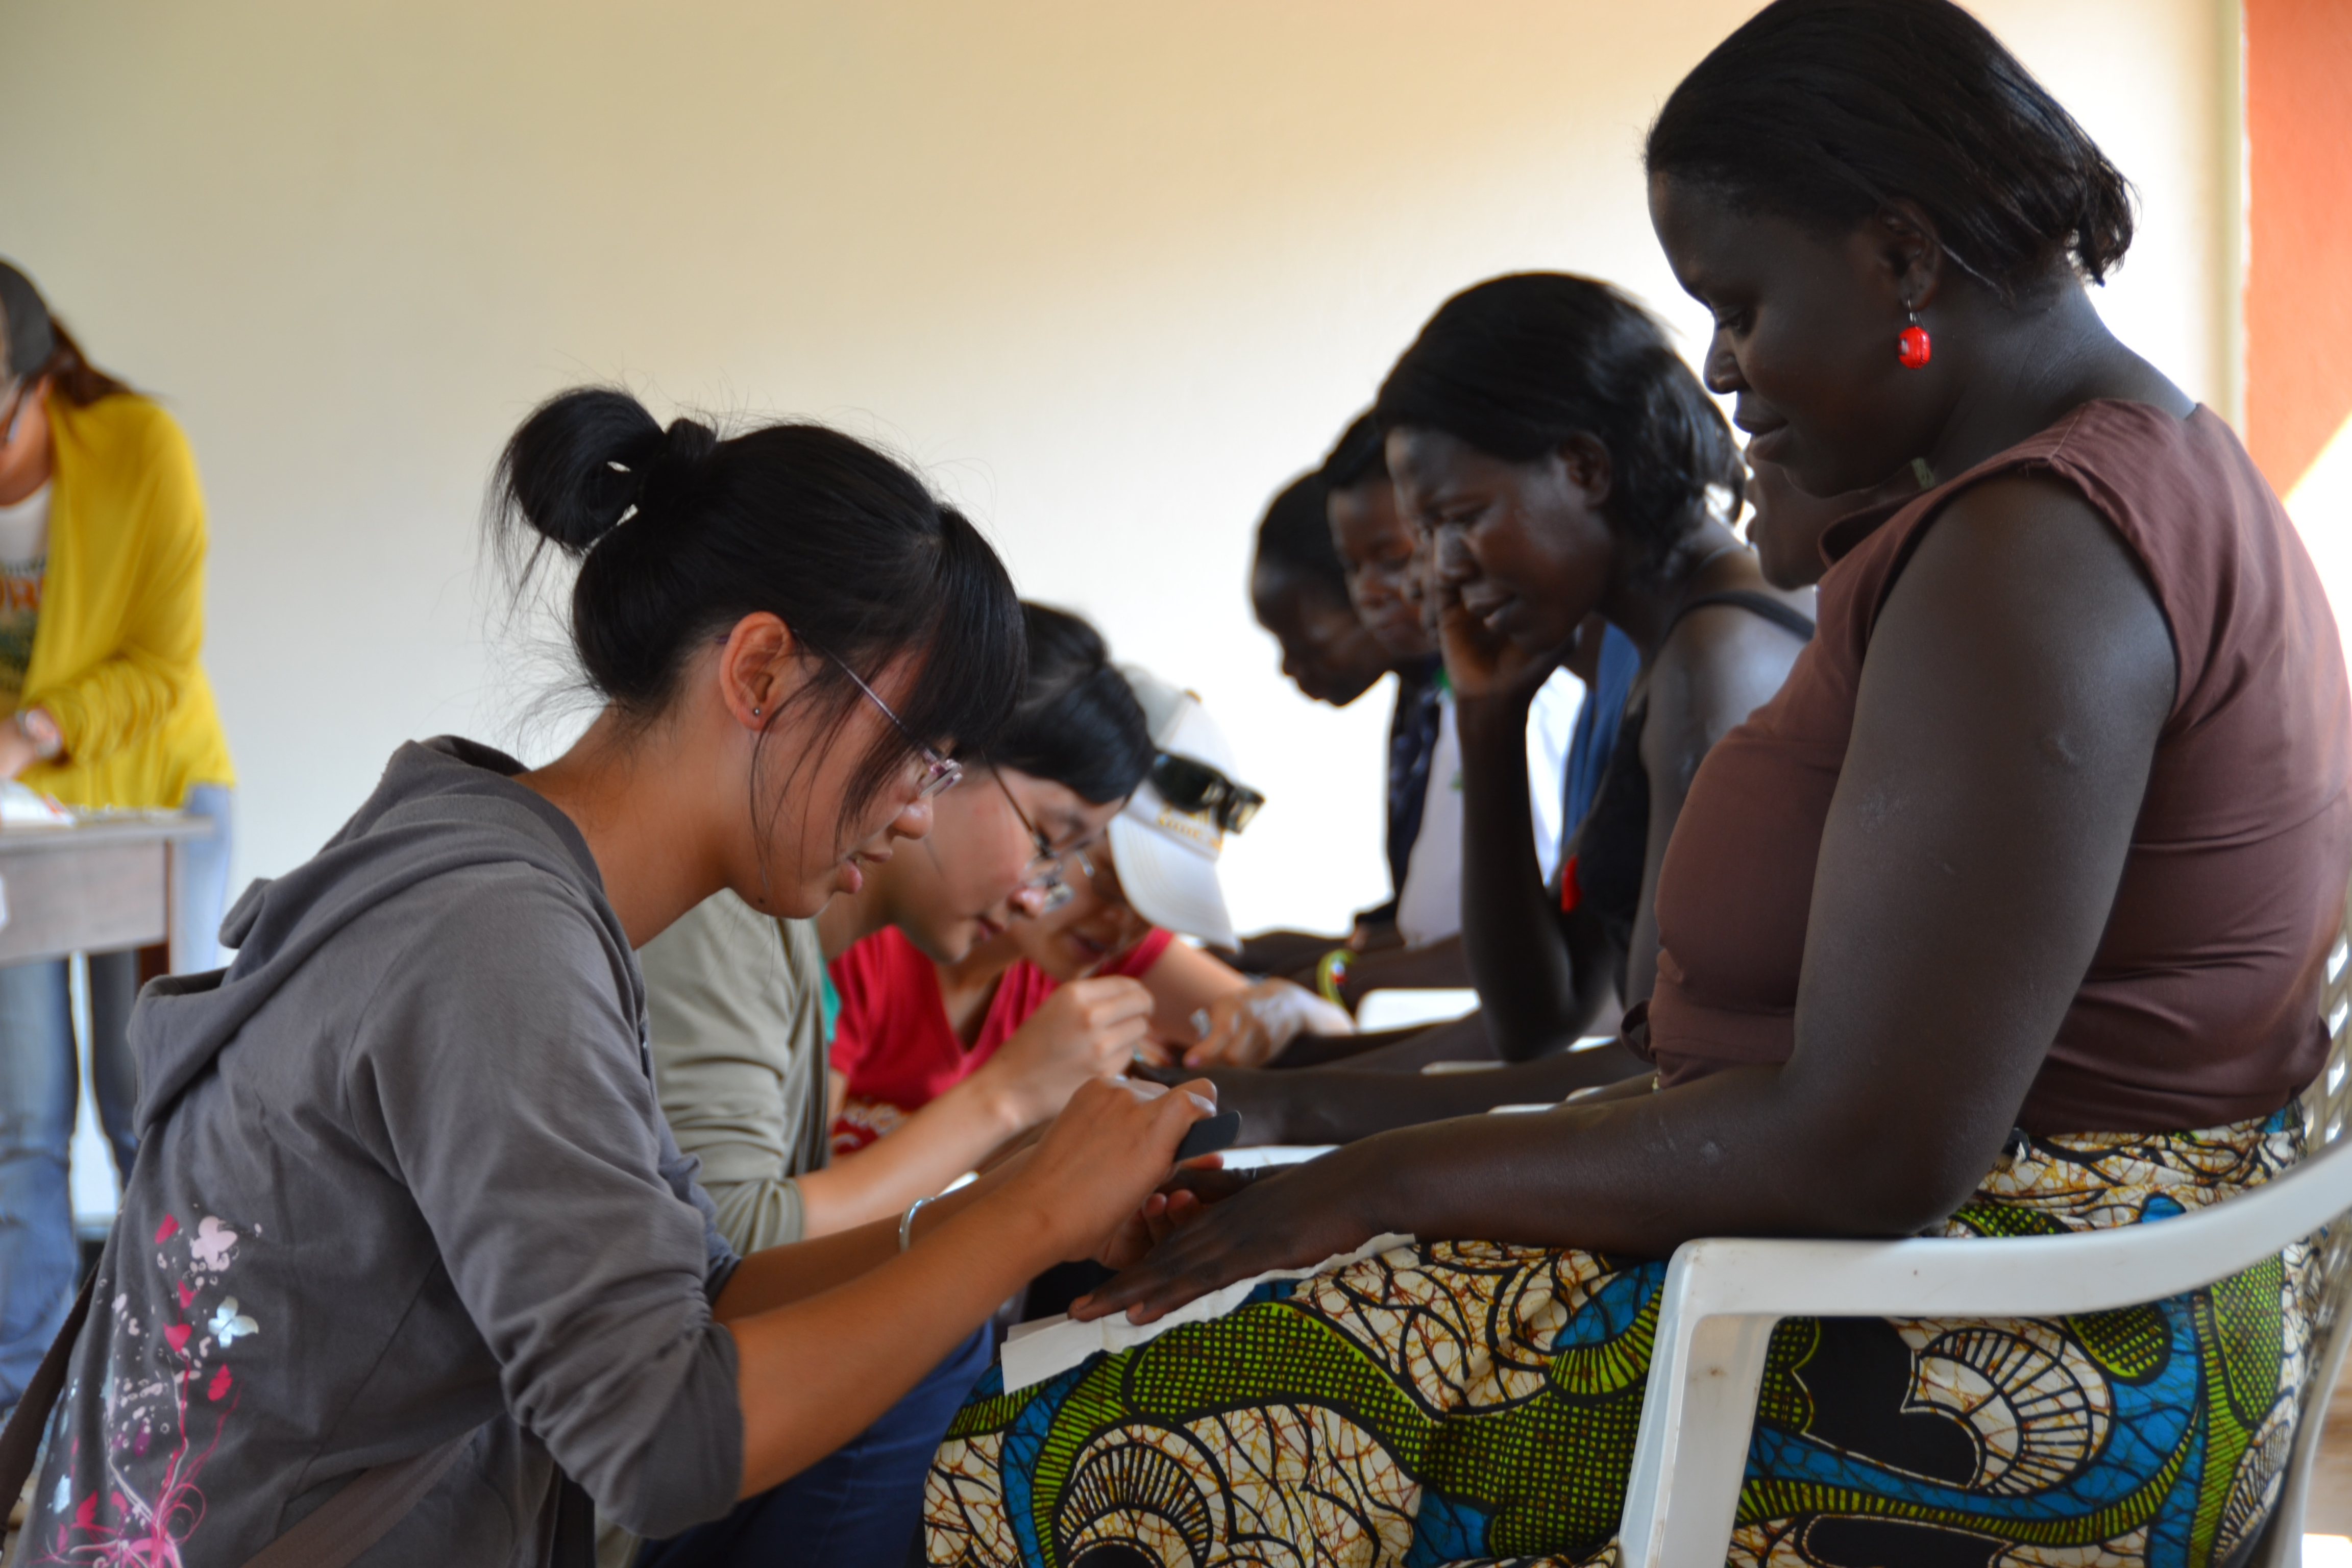 The students give manicures and facial treatment to the vulnerable women and hope they can feel the love and confidence they deserve.